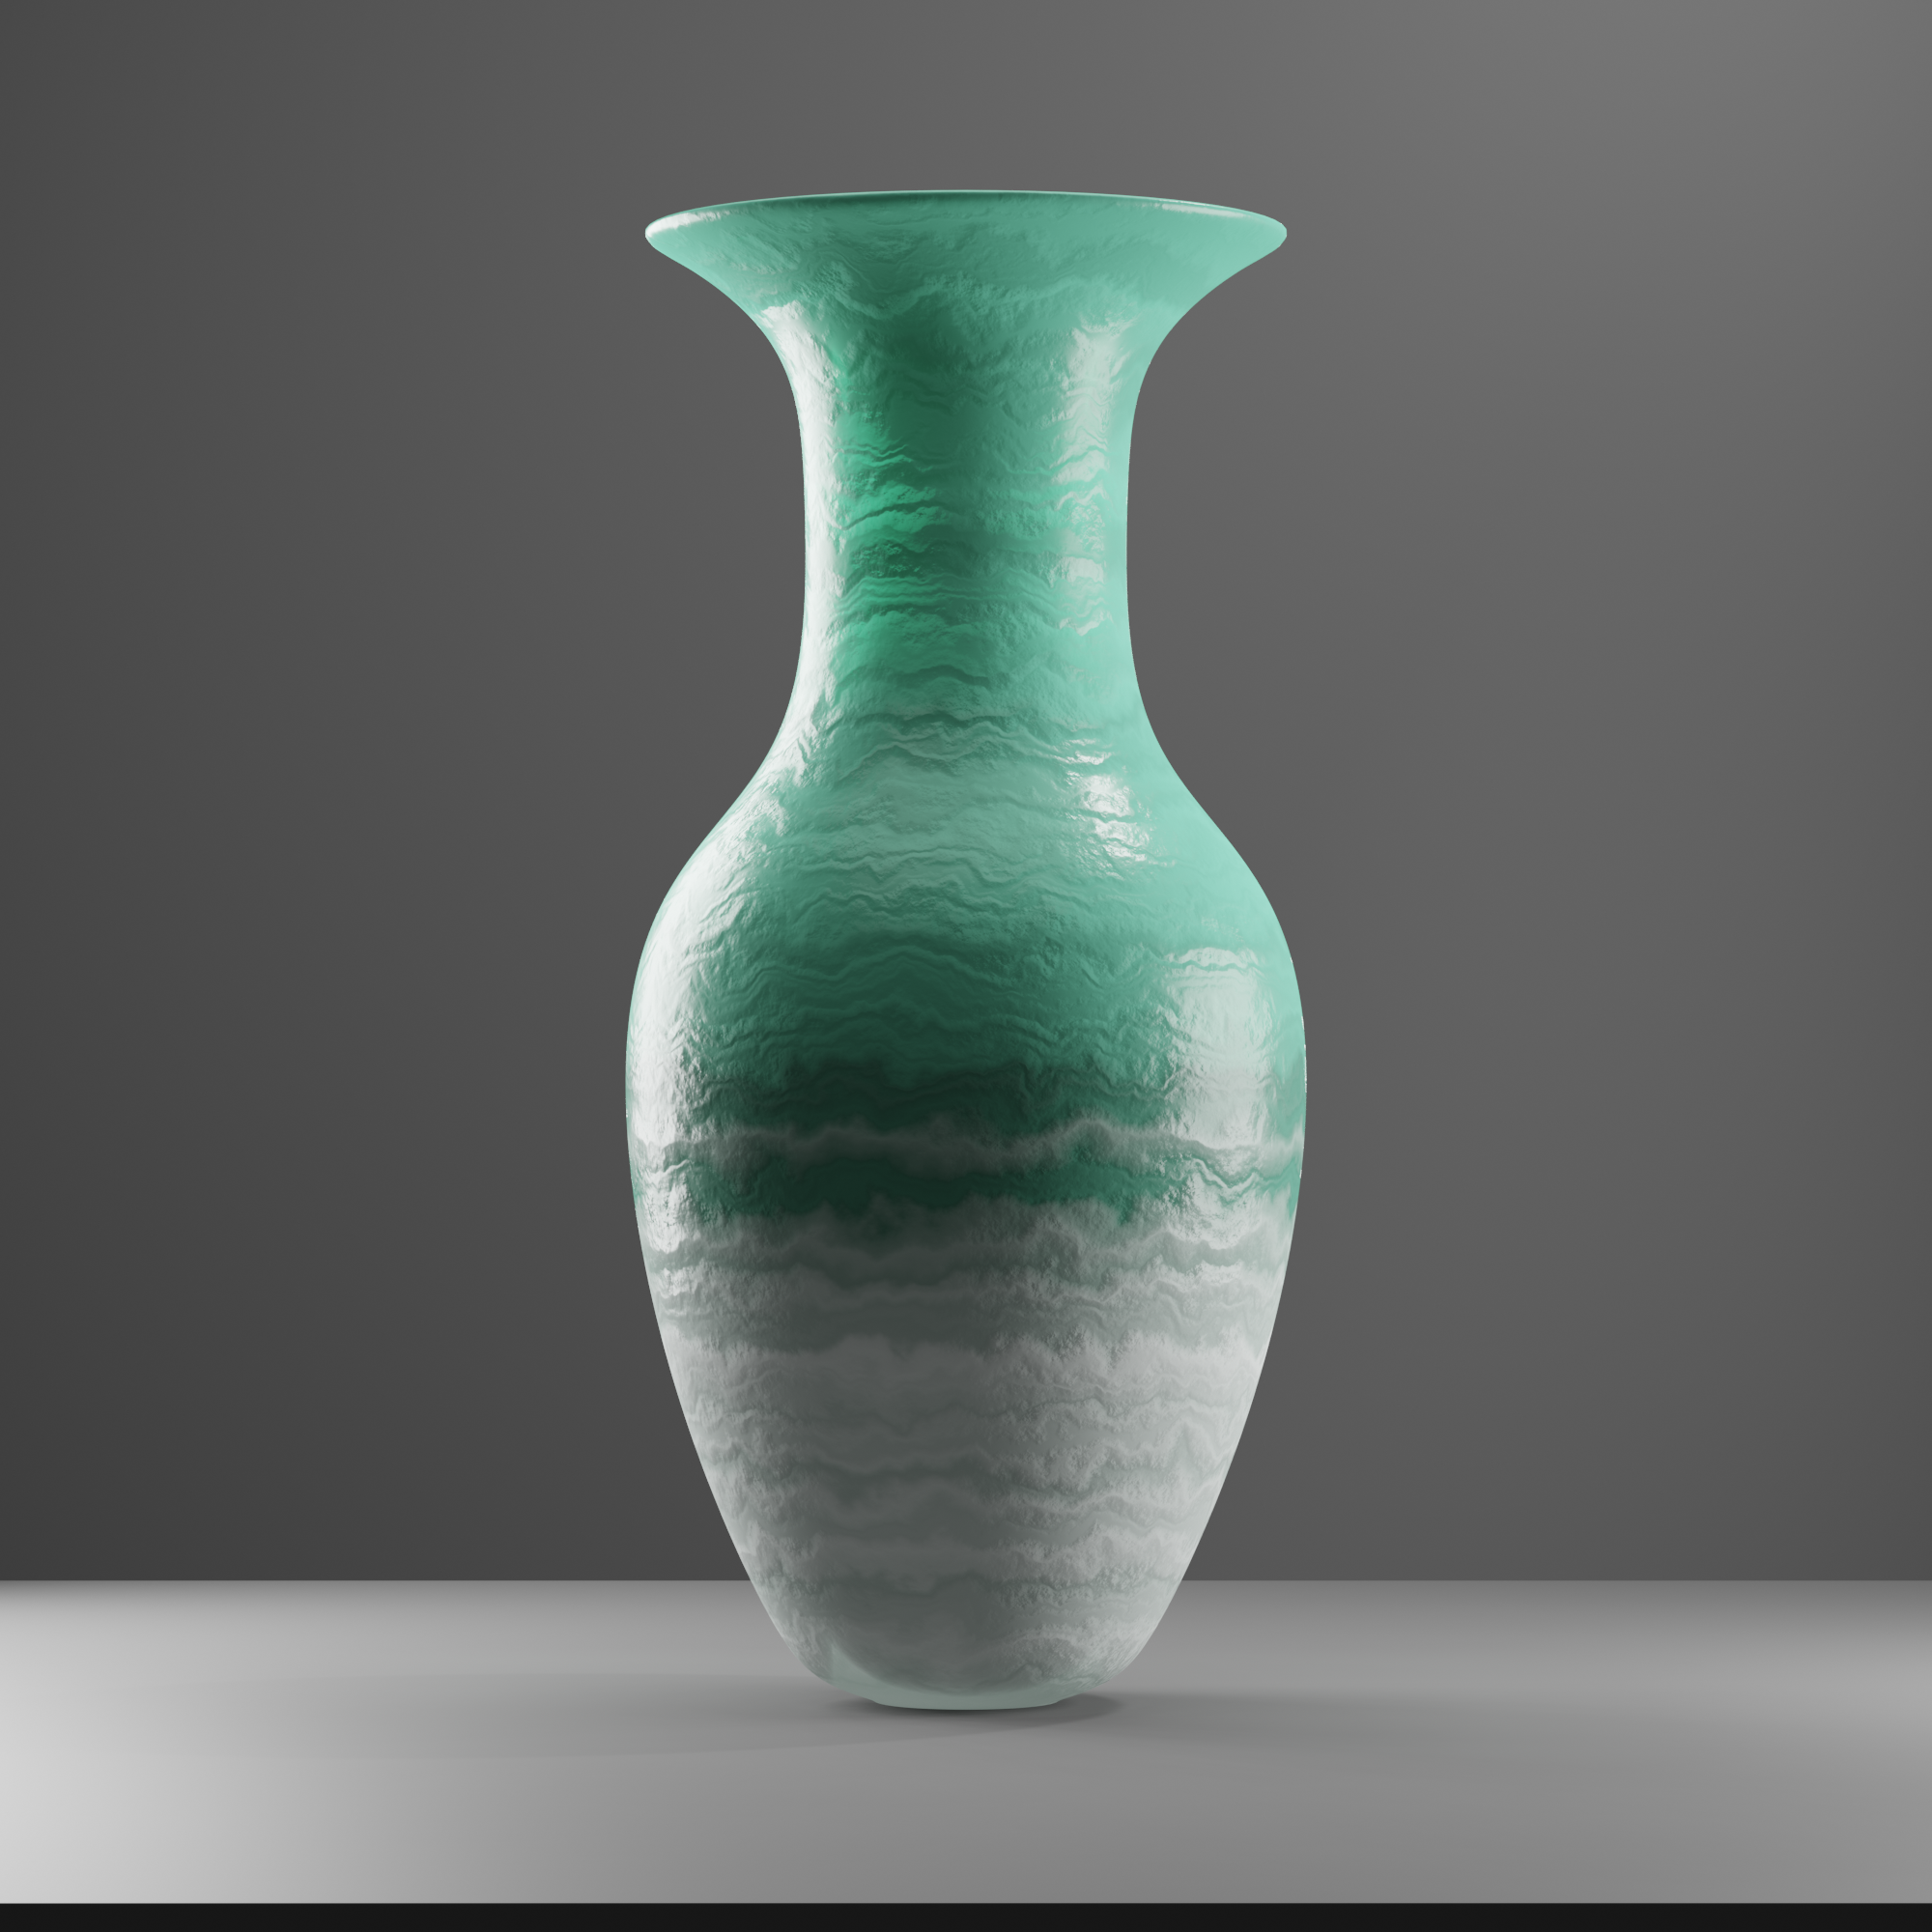 Pack of vases preview image 1